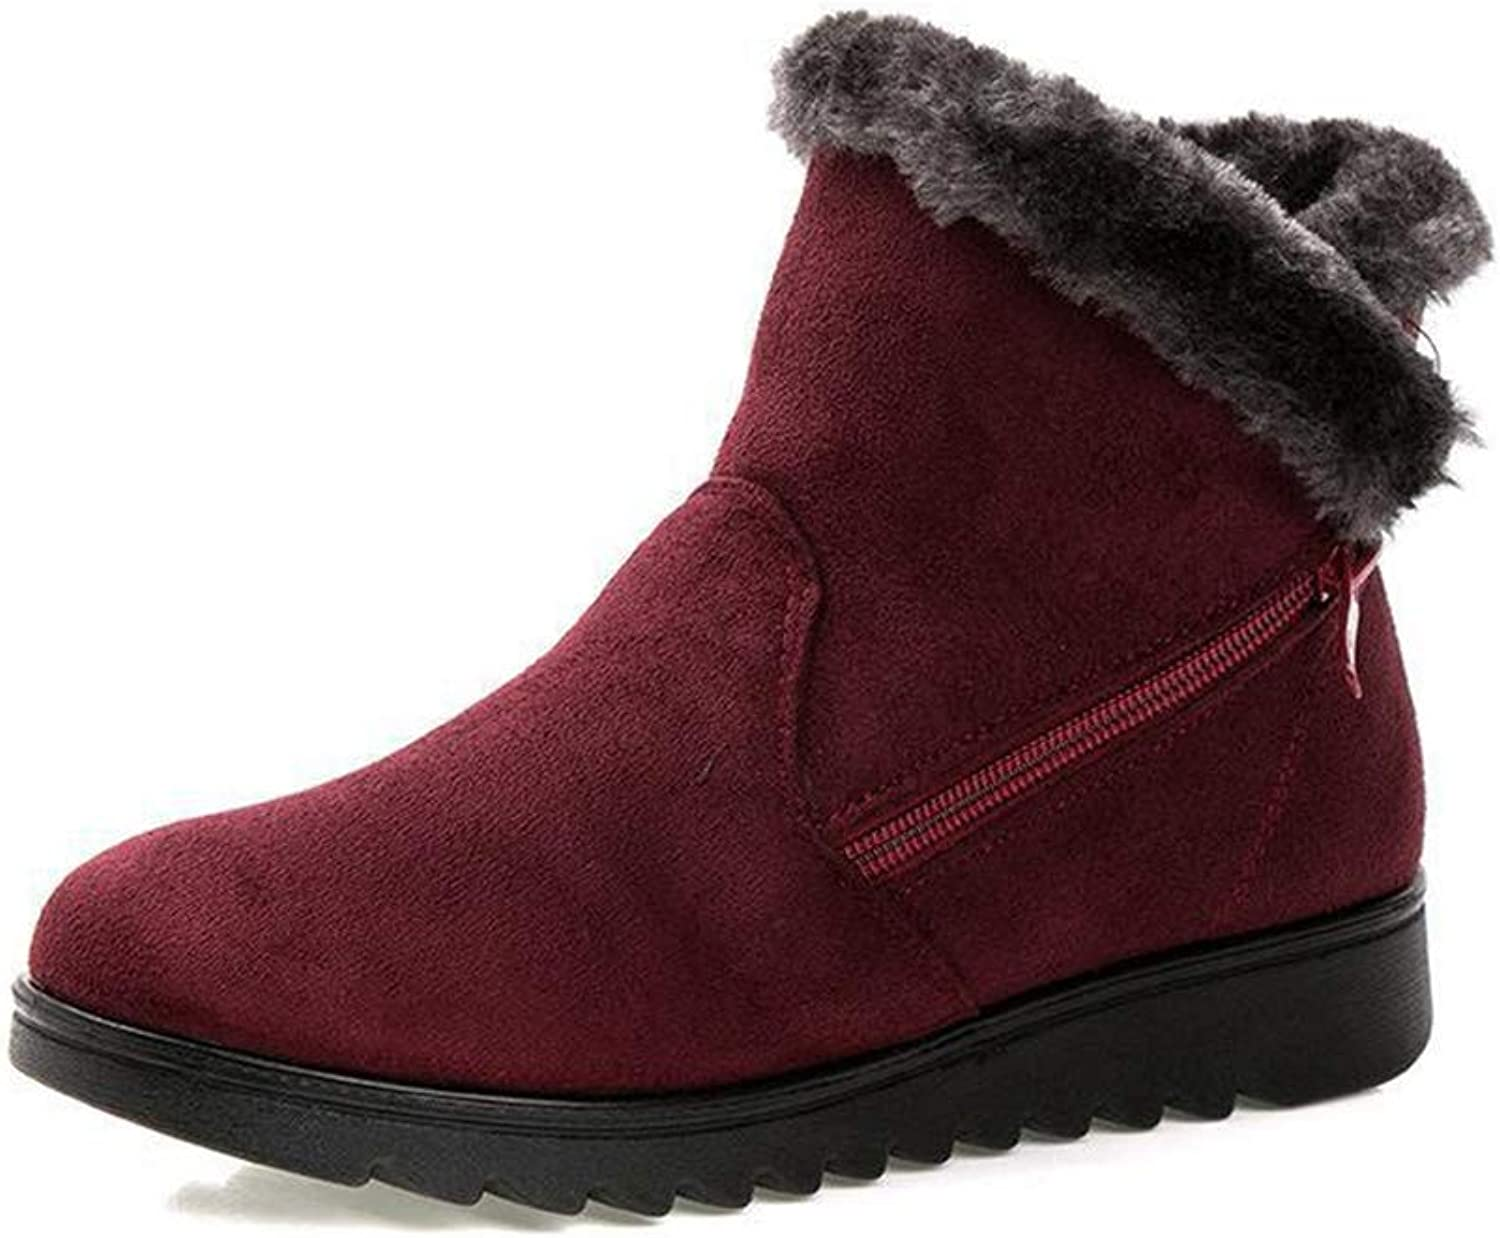 T-JULY Women's Comfortable Ankle Boots Waterproof Wedge Platform shoes Female Winter Warm Snow shoes